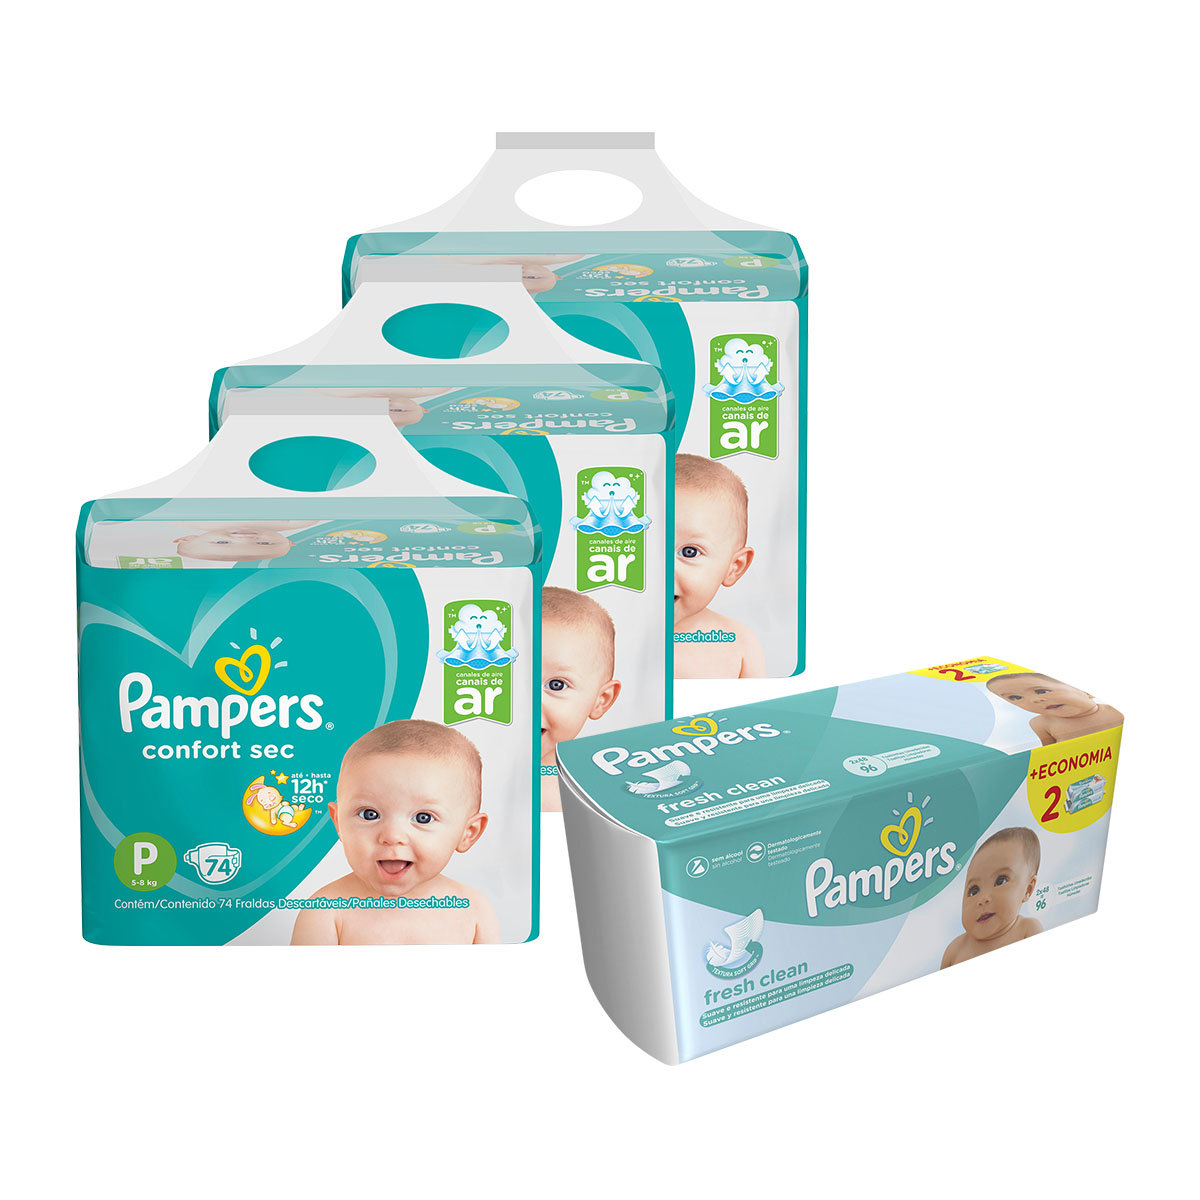 Kit Pampers - Fralda P Confort Sec Super 222 Un + Lenço Umedecido Fresh Clean 96 Un